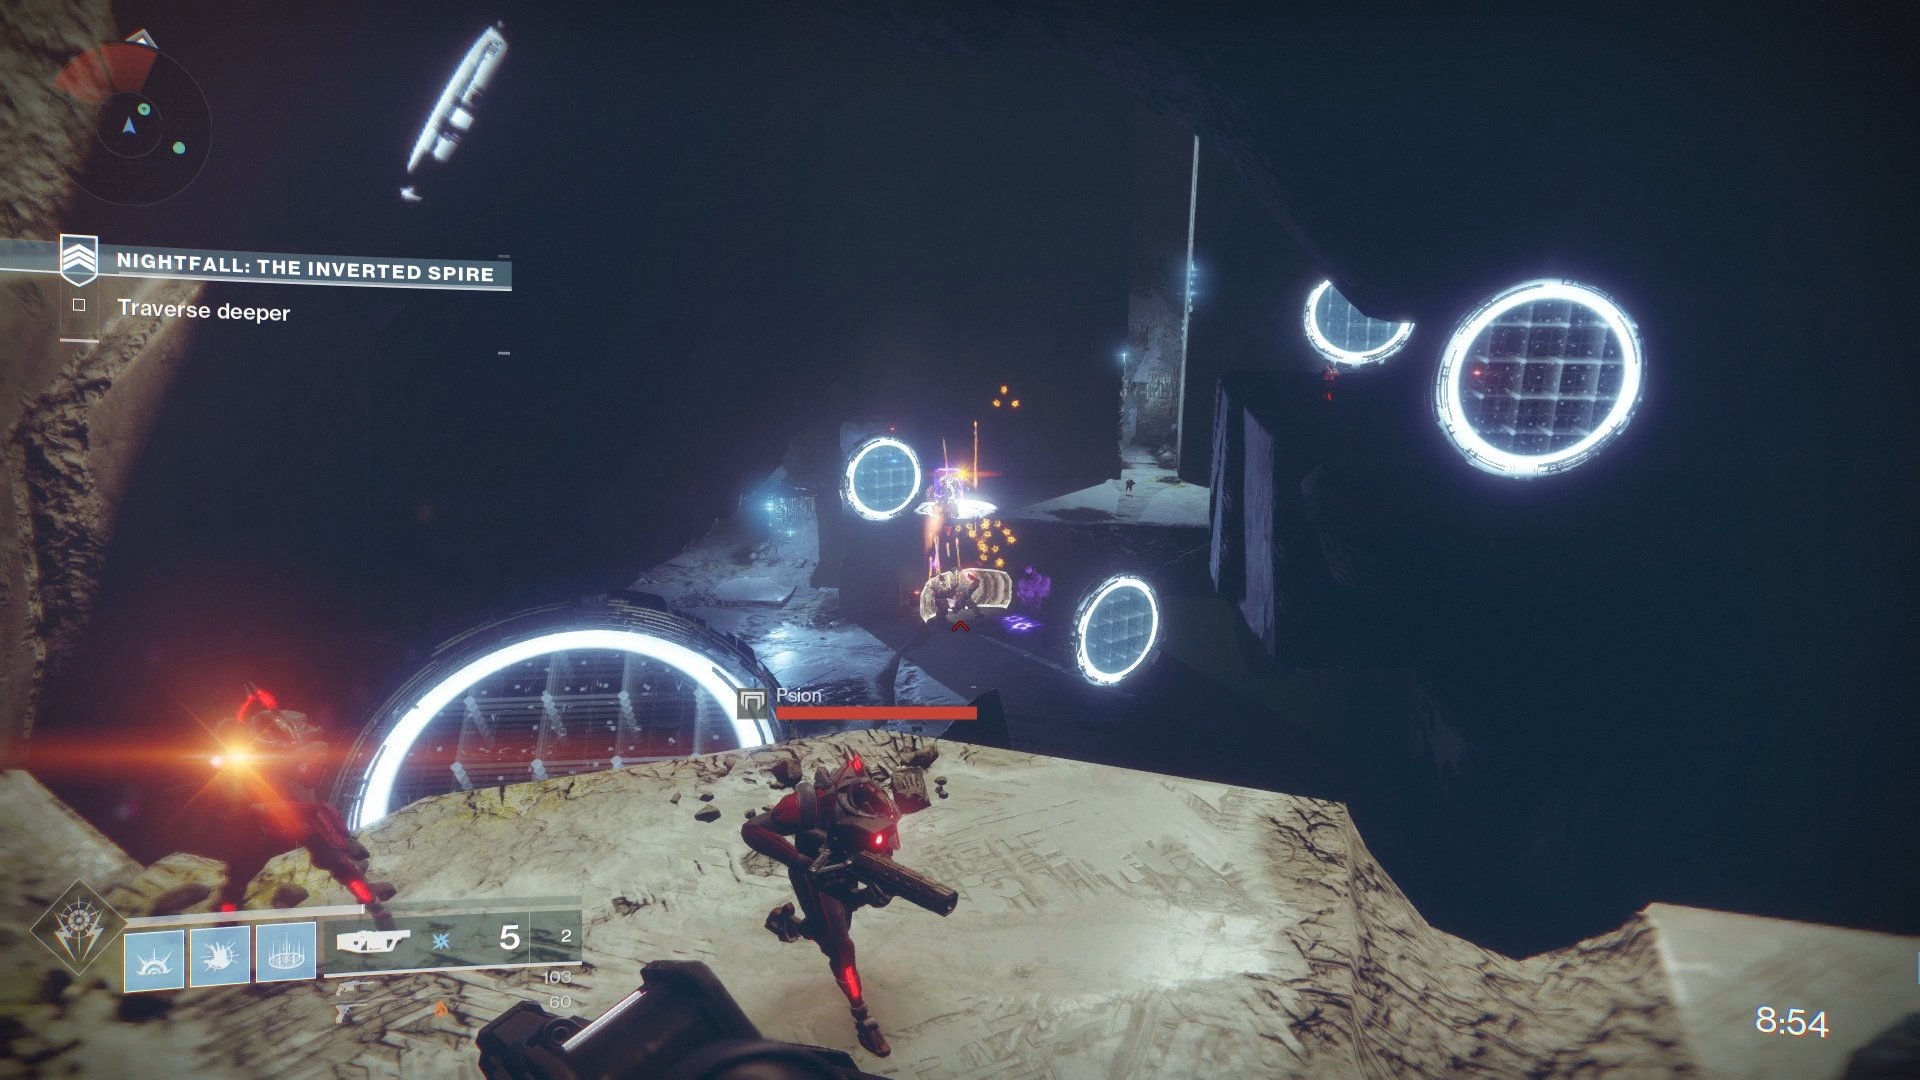 Jump through the rings to add more time to the time limit. However, don't jump through them at the risk of dying, else it will make the Nightfall more difficult.